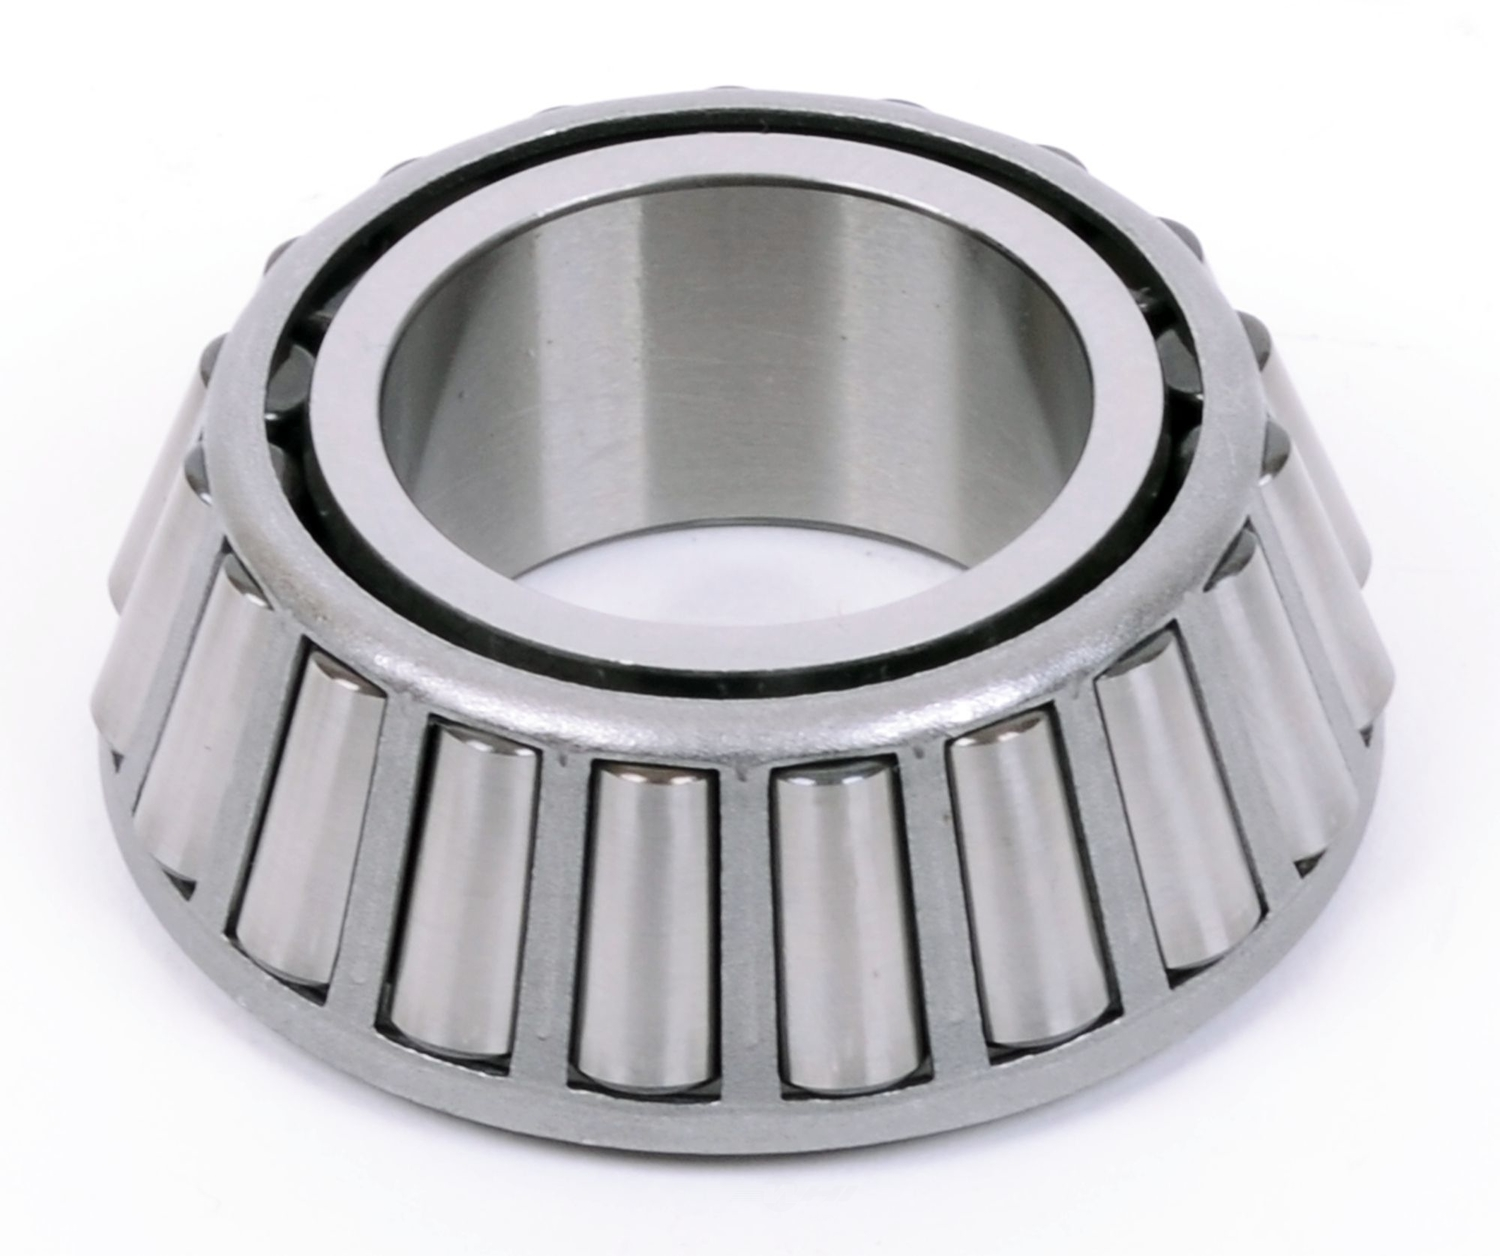 SKF (CHICAGO RAWHIDE) - Differential Pinion Bearing - SKF M88048 VP